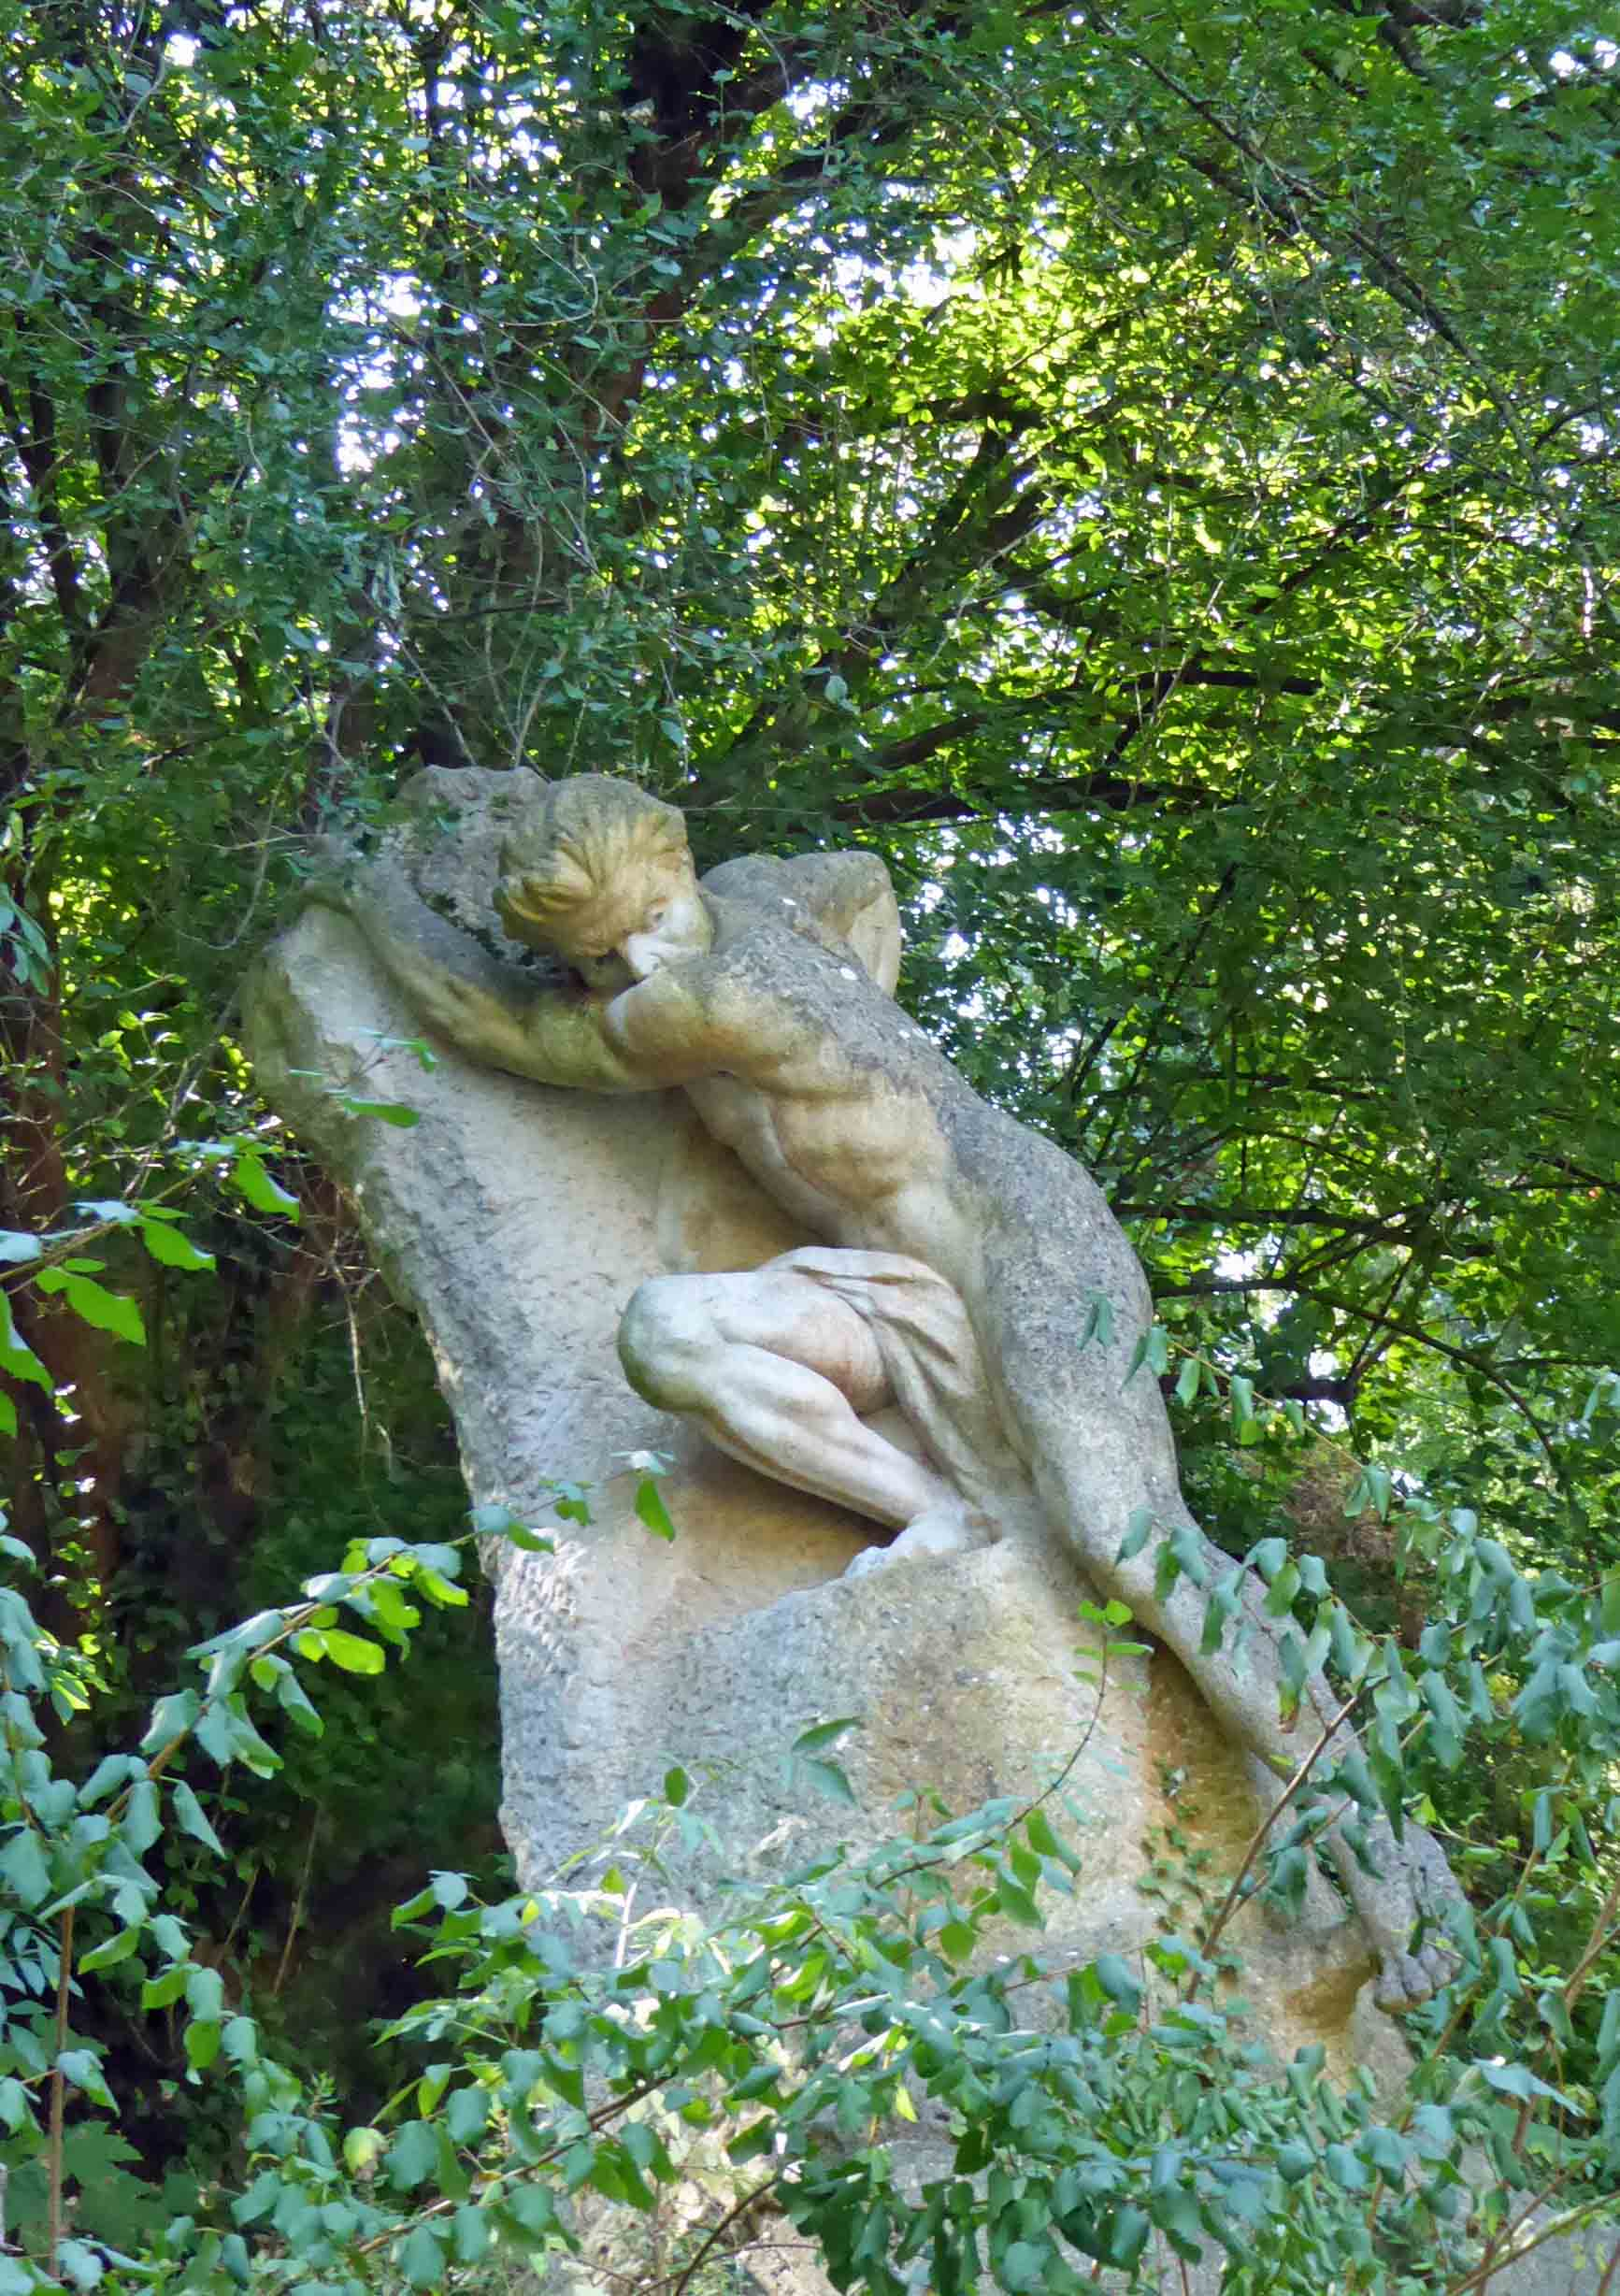 Sculpture of a man clinging to a rock